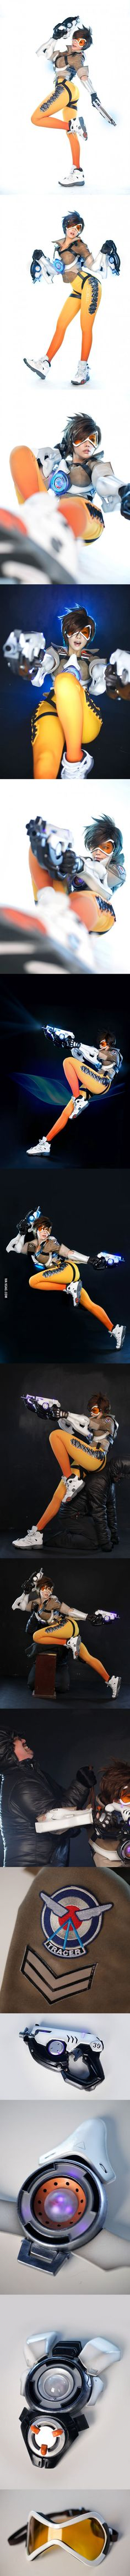 Tracer Cosplay -- it is insane. Virtually identical to the character: face included.